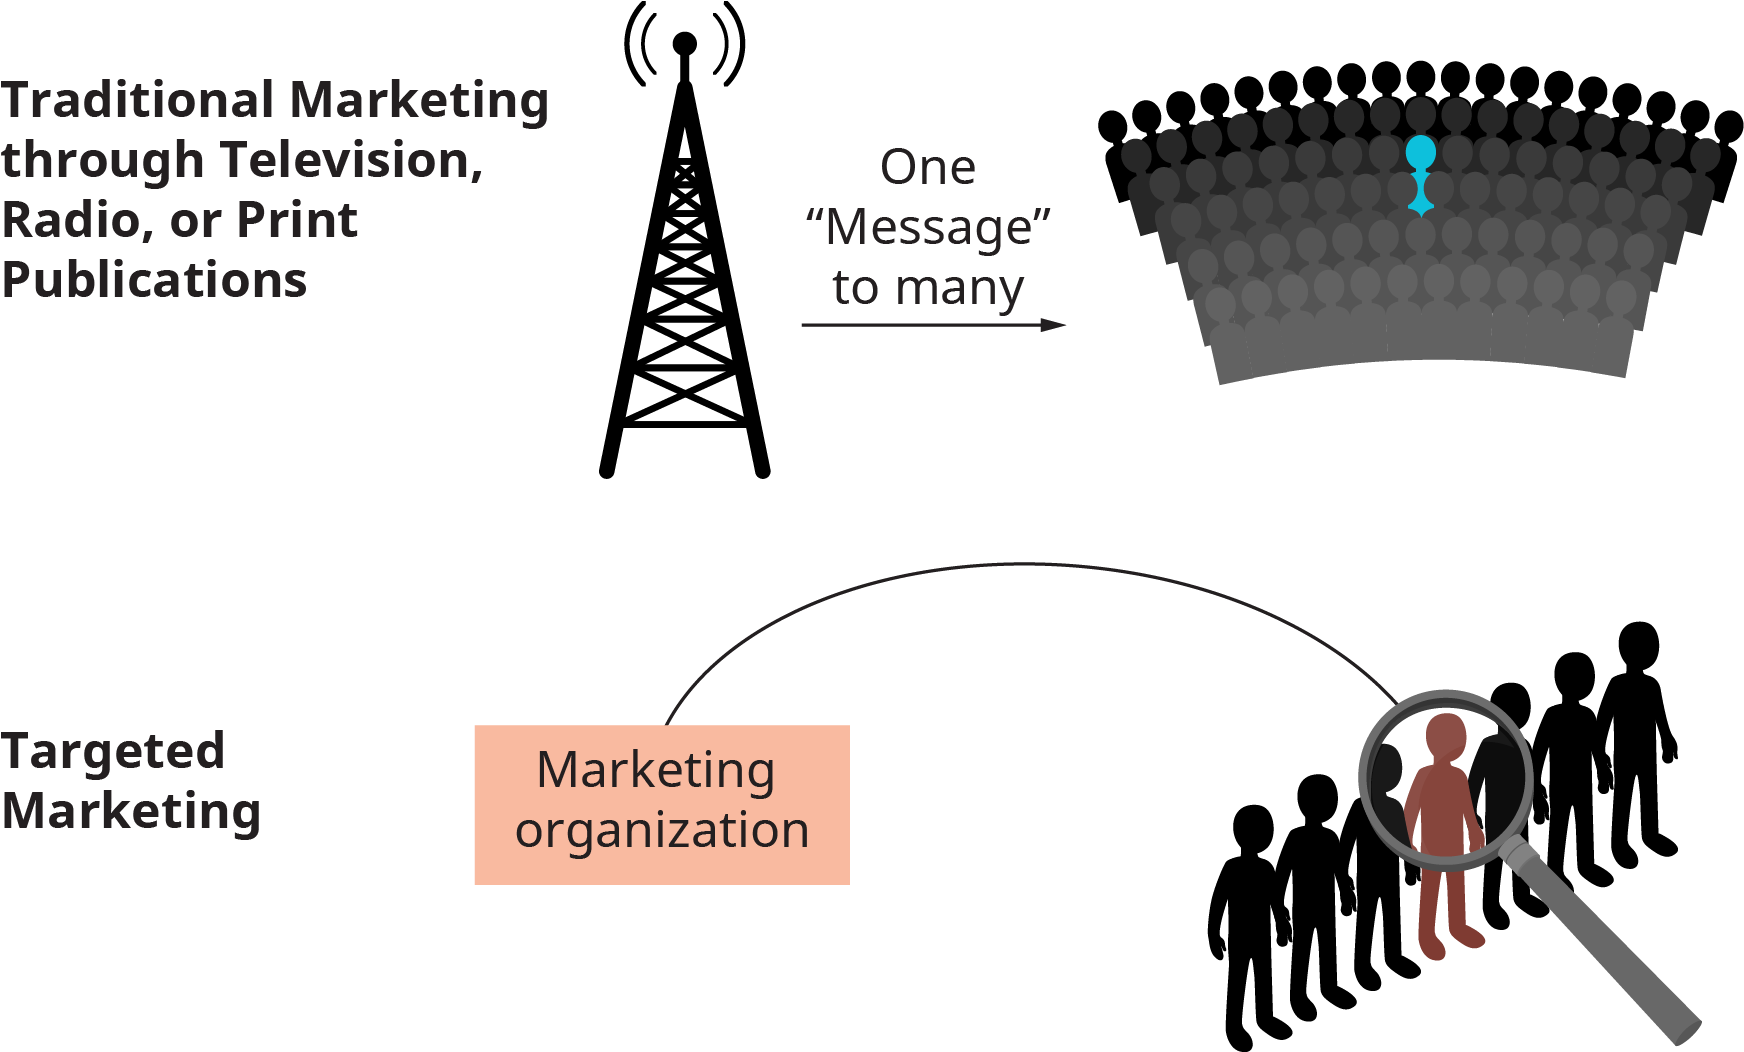 Two types of marketing are shown. Targeted marketing is shown as a marketing organization focusing on an individual in a group. Traditional marketing through television, radio, or print publications is shown as a radio tower broadcasting on message to many, or a large audience.